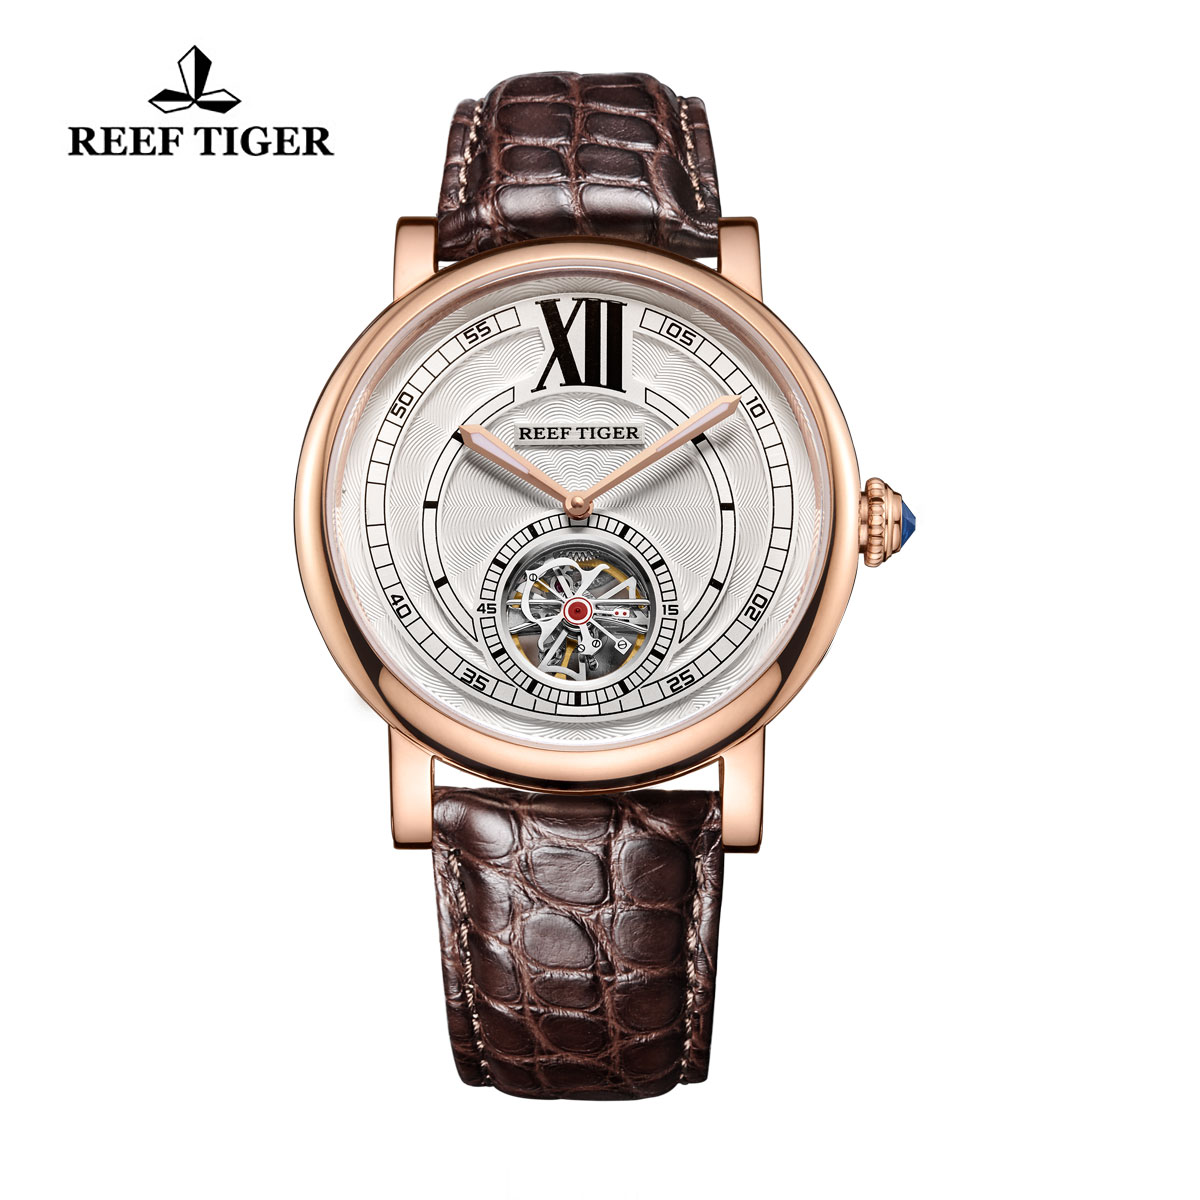 Reef Tiger Royal Crown Tourbillon Watches White Dial  Blue Crystal Crown Alligator Strap RGA192